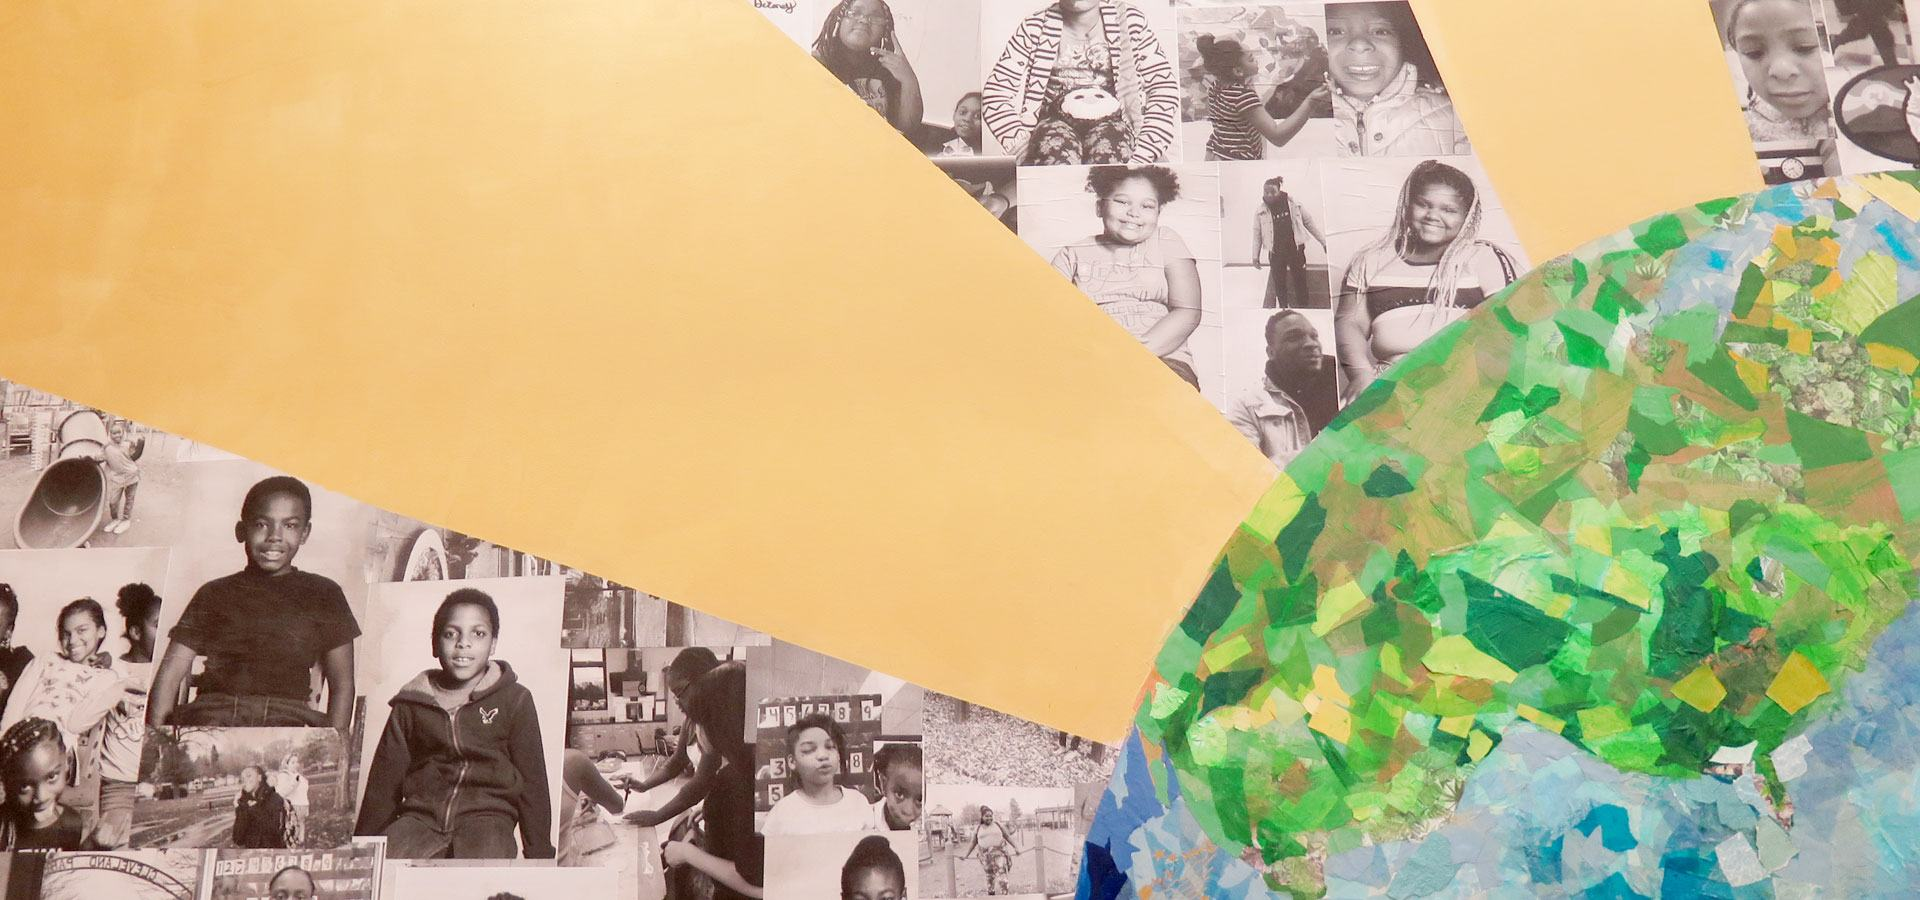 A multimedia mural of a radiating sun earth and collaged portraits of young people